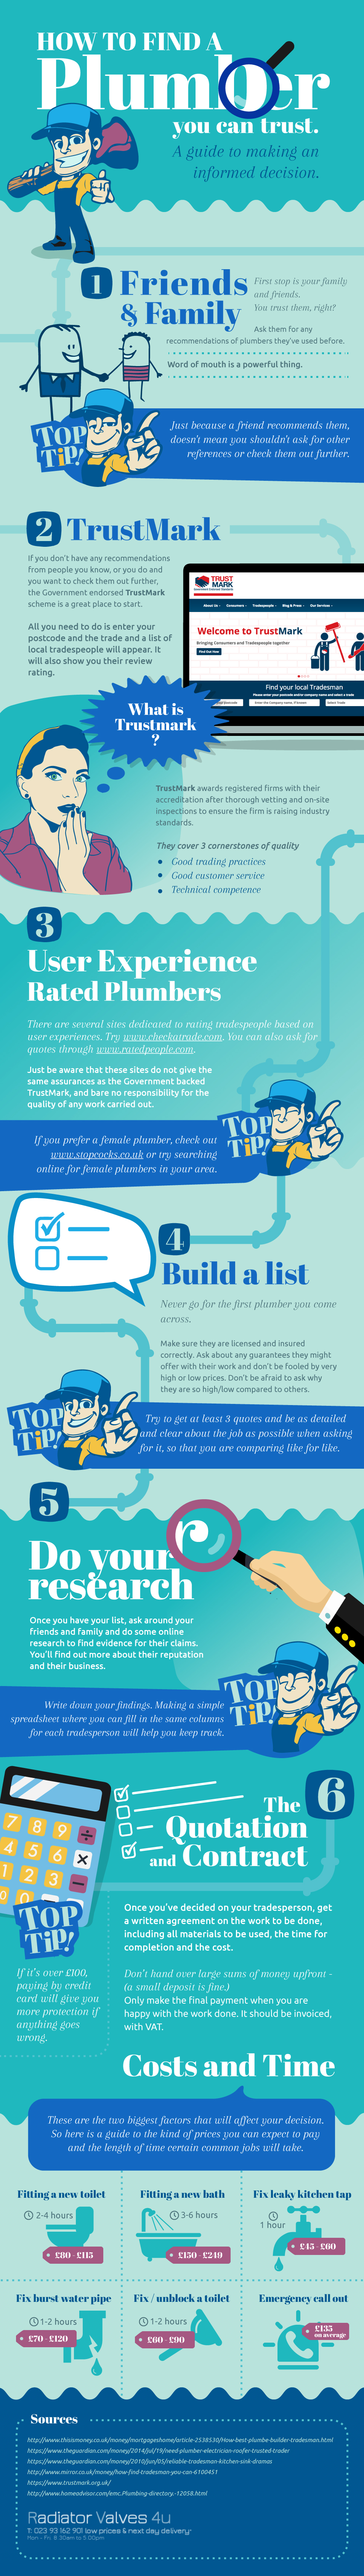 How To Find A Plumber You Can Trust [Infographic]